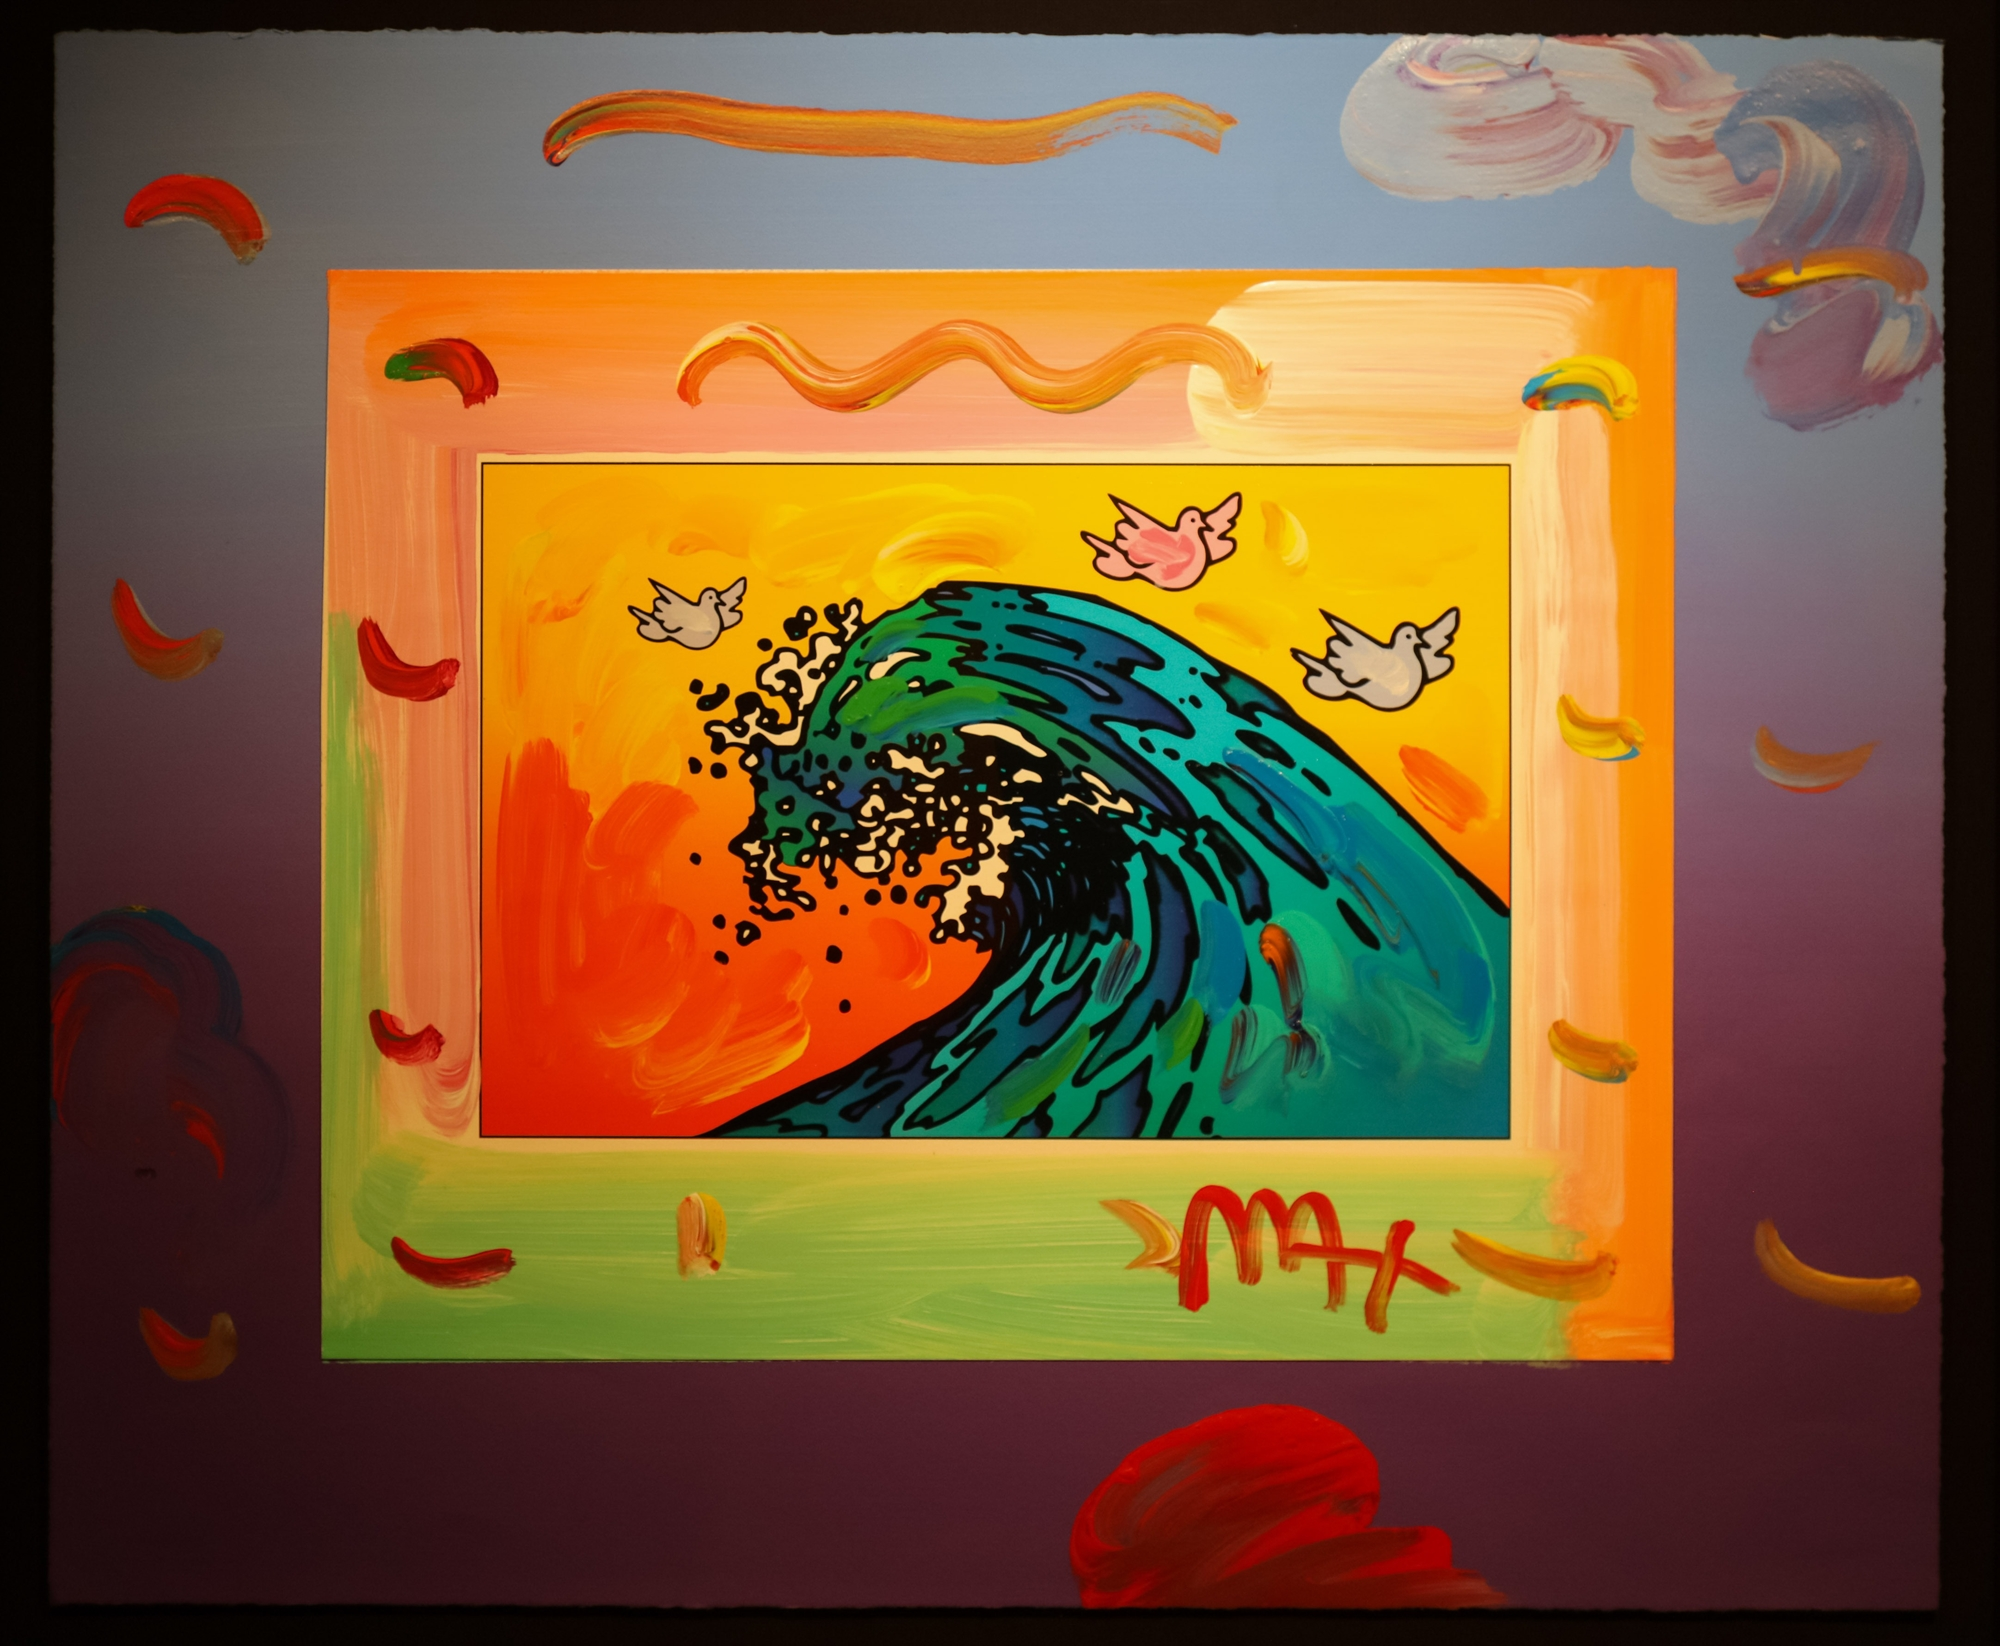 PROTECT PLANET by Peter Max